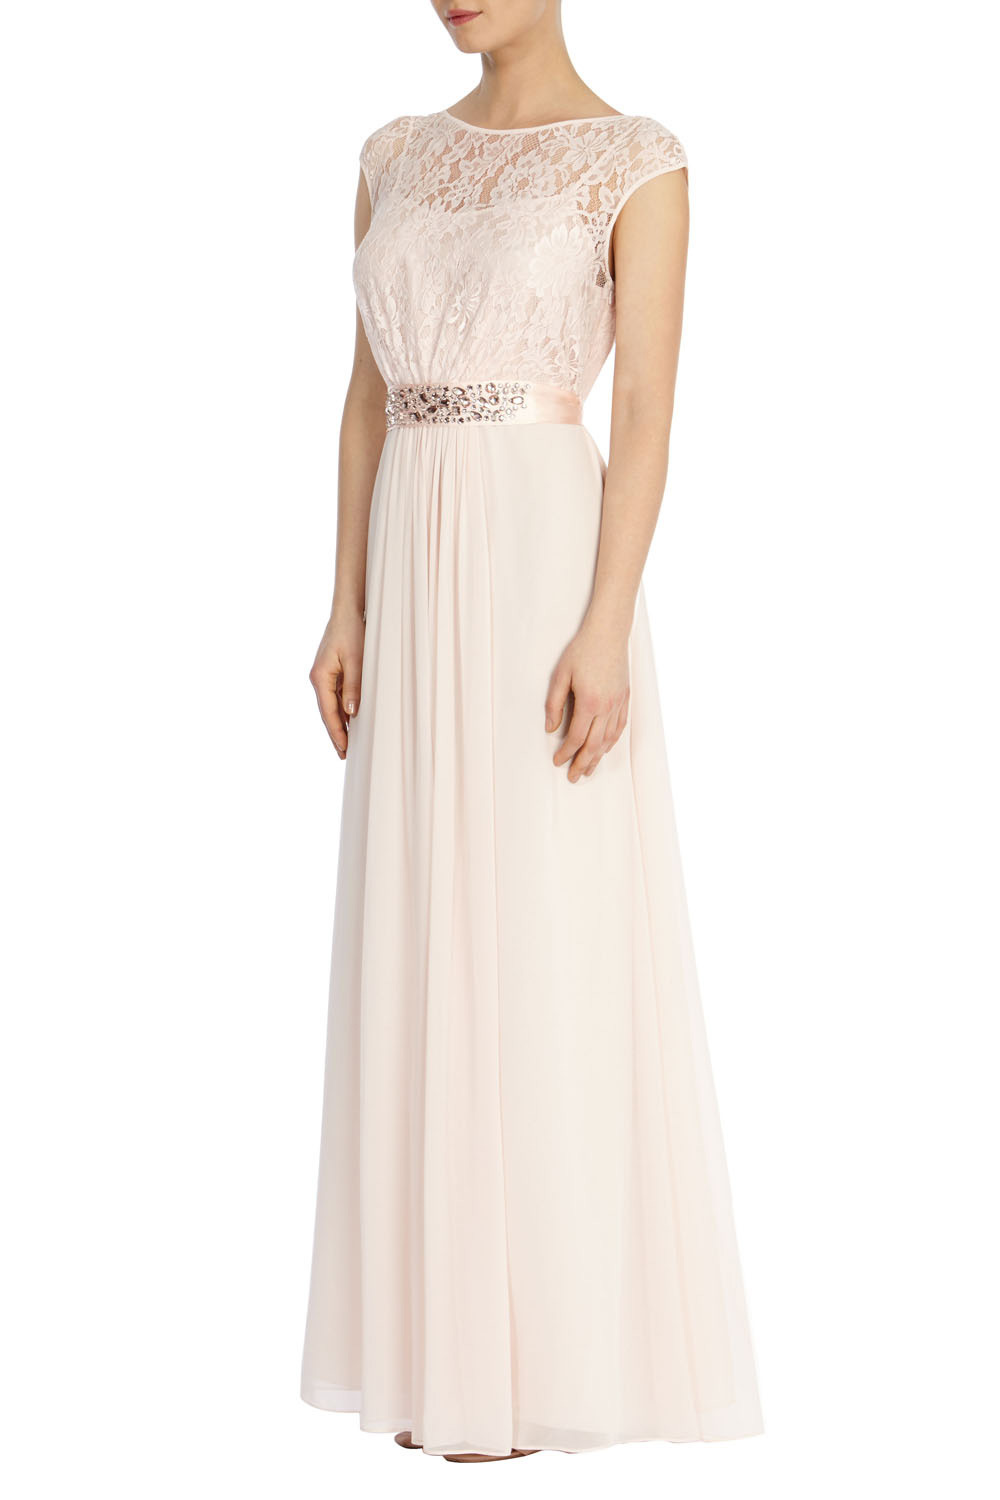 Lori Lee Lace Maxi Dress - sleeve style: capped; pattern: plain; style: maxi dress; waist detail: belted waist/tie at waist/drawstring; predominant colour: blush; occasions: evening; length: floor length; fit: fitted at waist & bust; fibres: polyester/polyamide - 100%; neckline: crew; sleeve length: short sleeve; texture group: sheer fabrics/chiffon/organza etc.; pattern type: fabric; embellishment: lace; season: s/s 2016; wardrobe: event